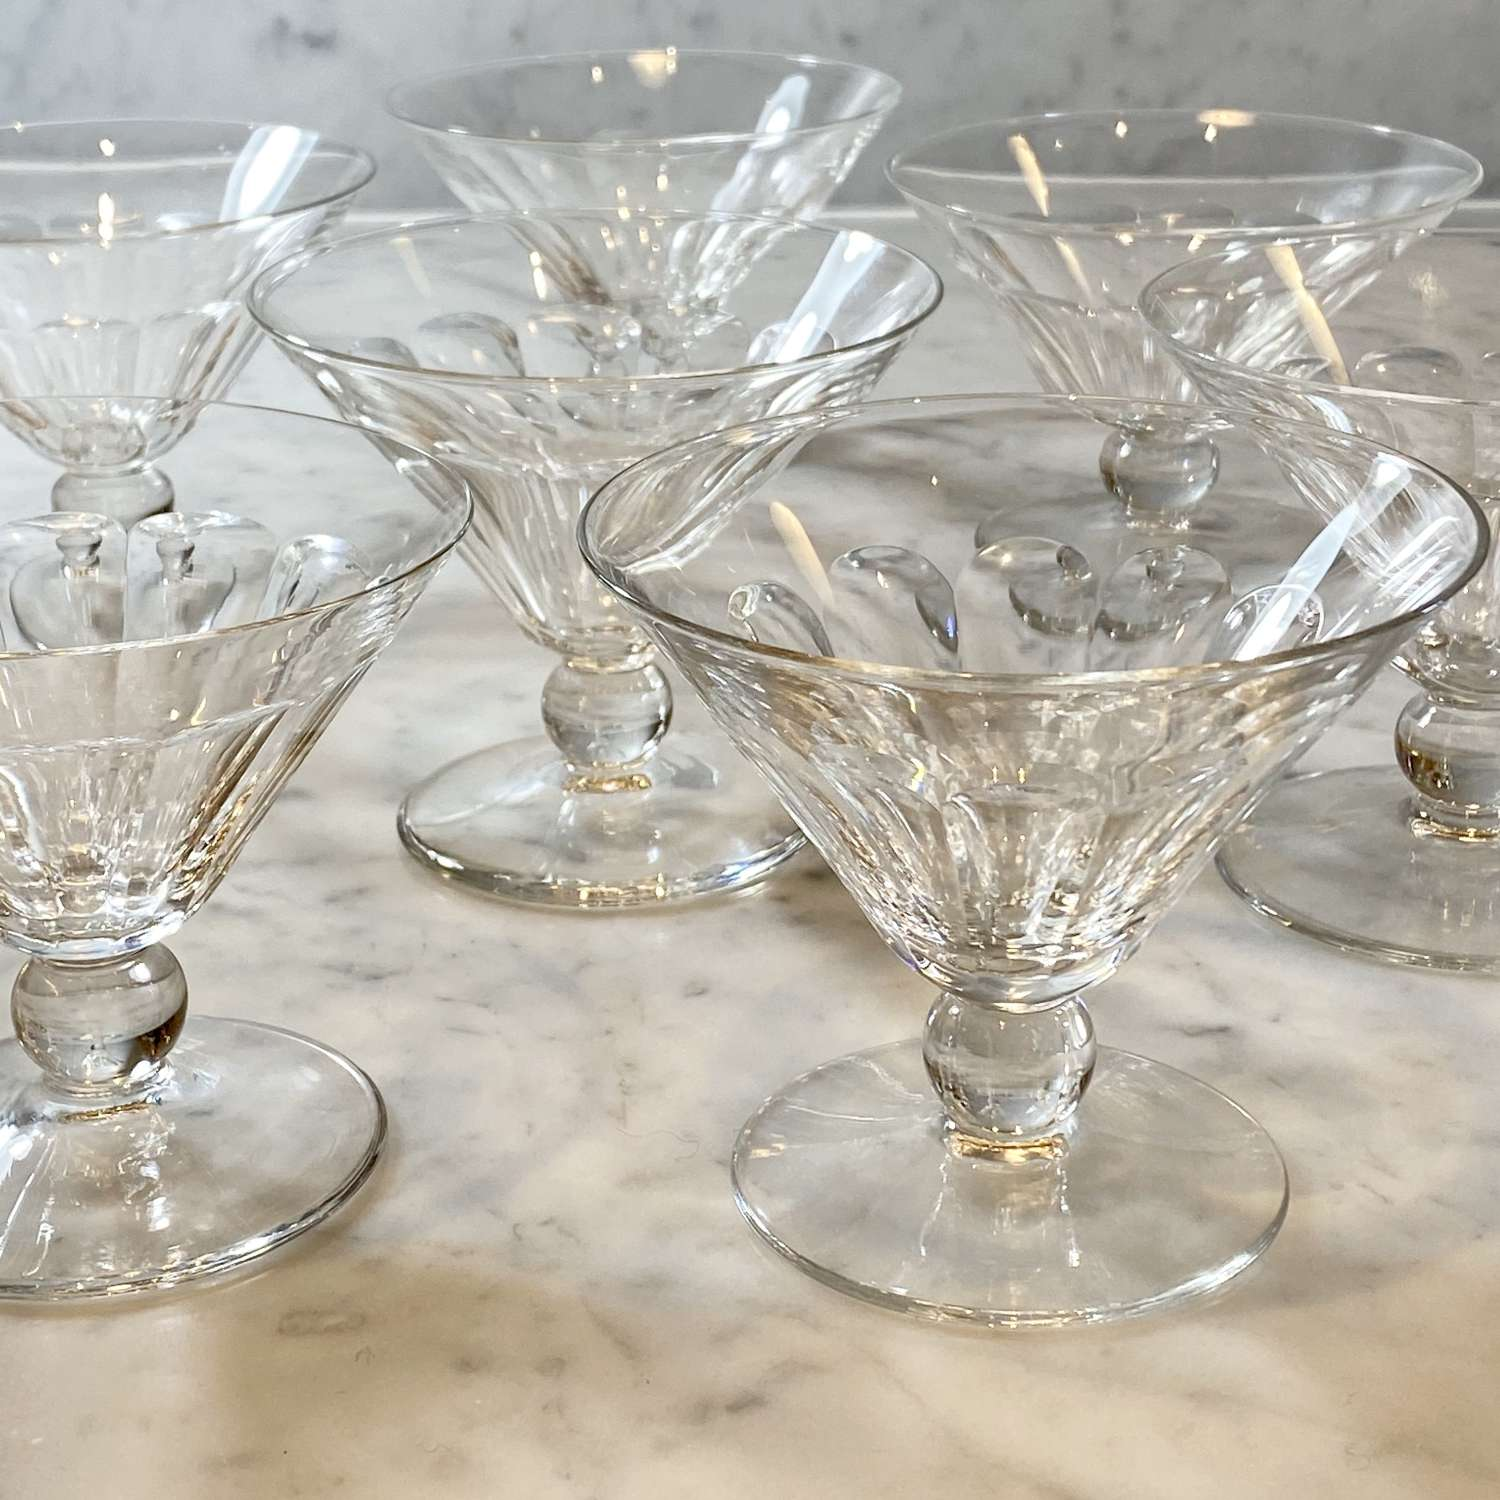 Set of 7 Val Saint Lambert crystal cocktail or champagne coupe glasses